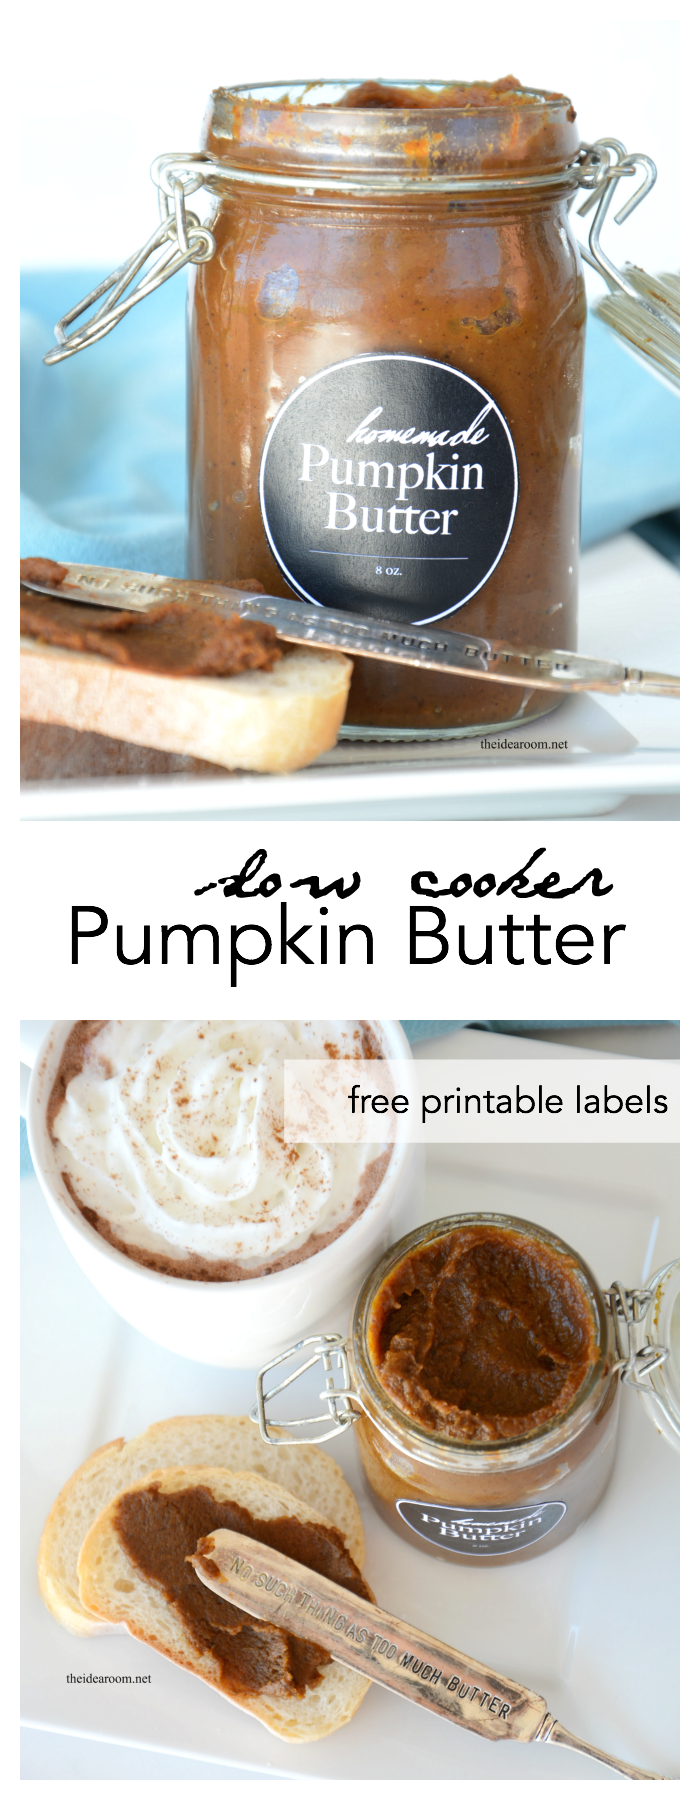 Slow Cooker Pumpkin Butter Recipe - The Idea Room